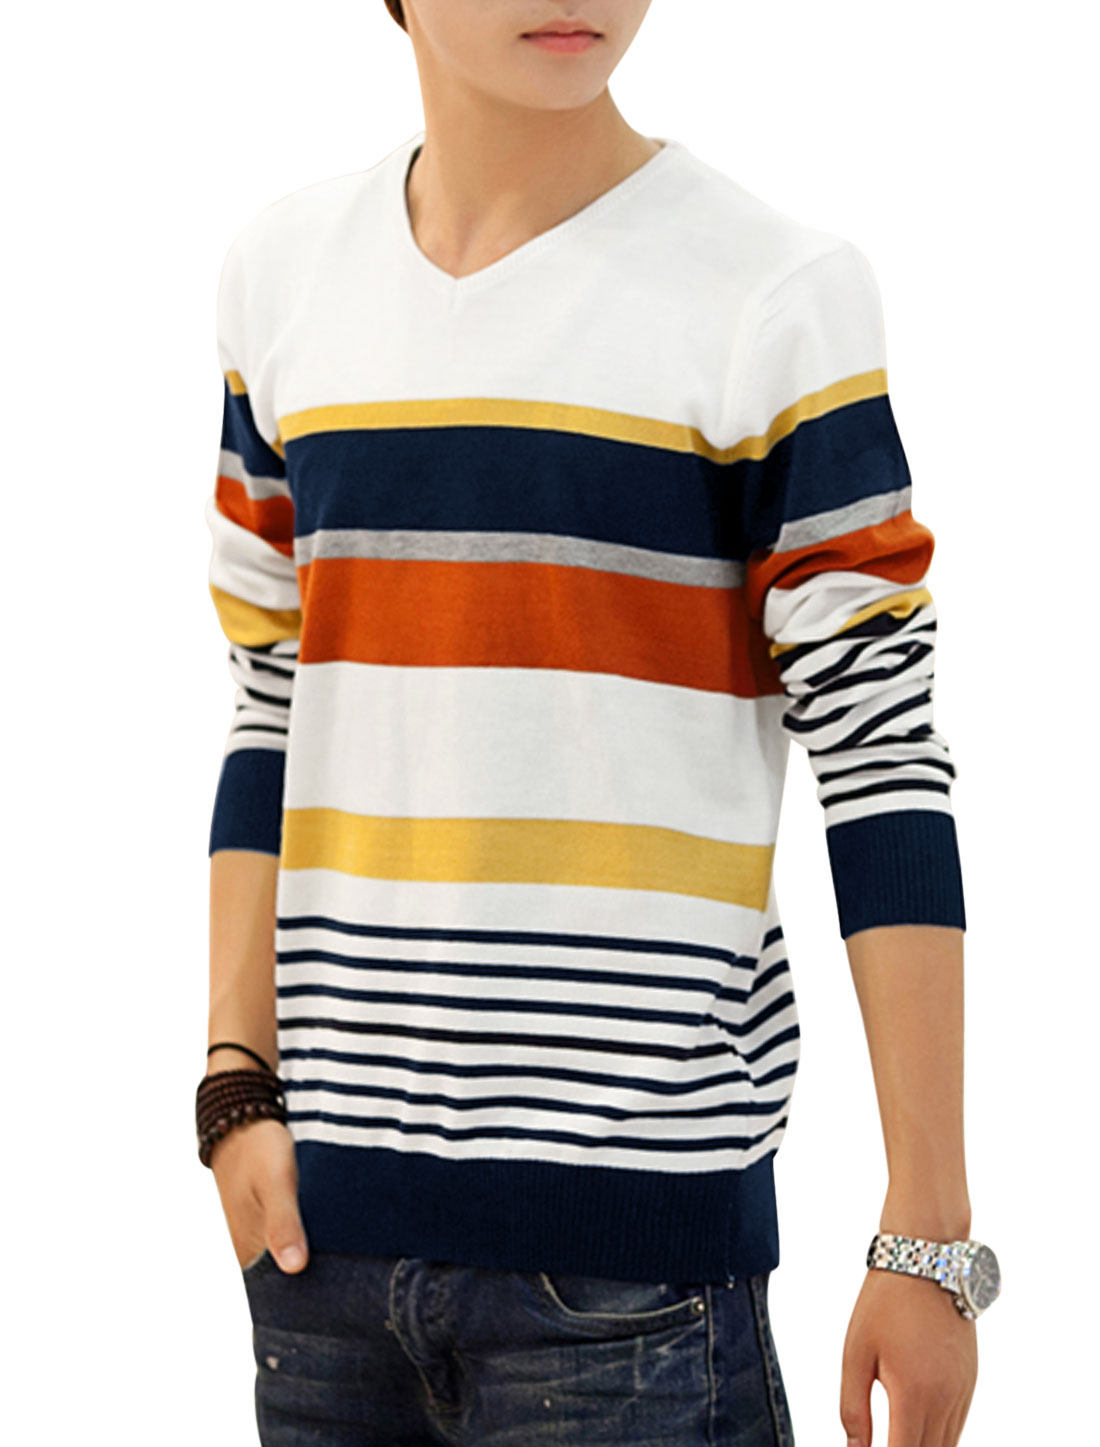 V Neck Long Sleeves Fashion Knit Tops for Men White Navy Blue S